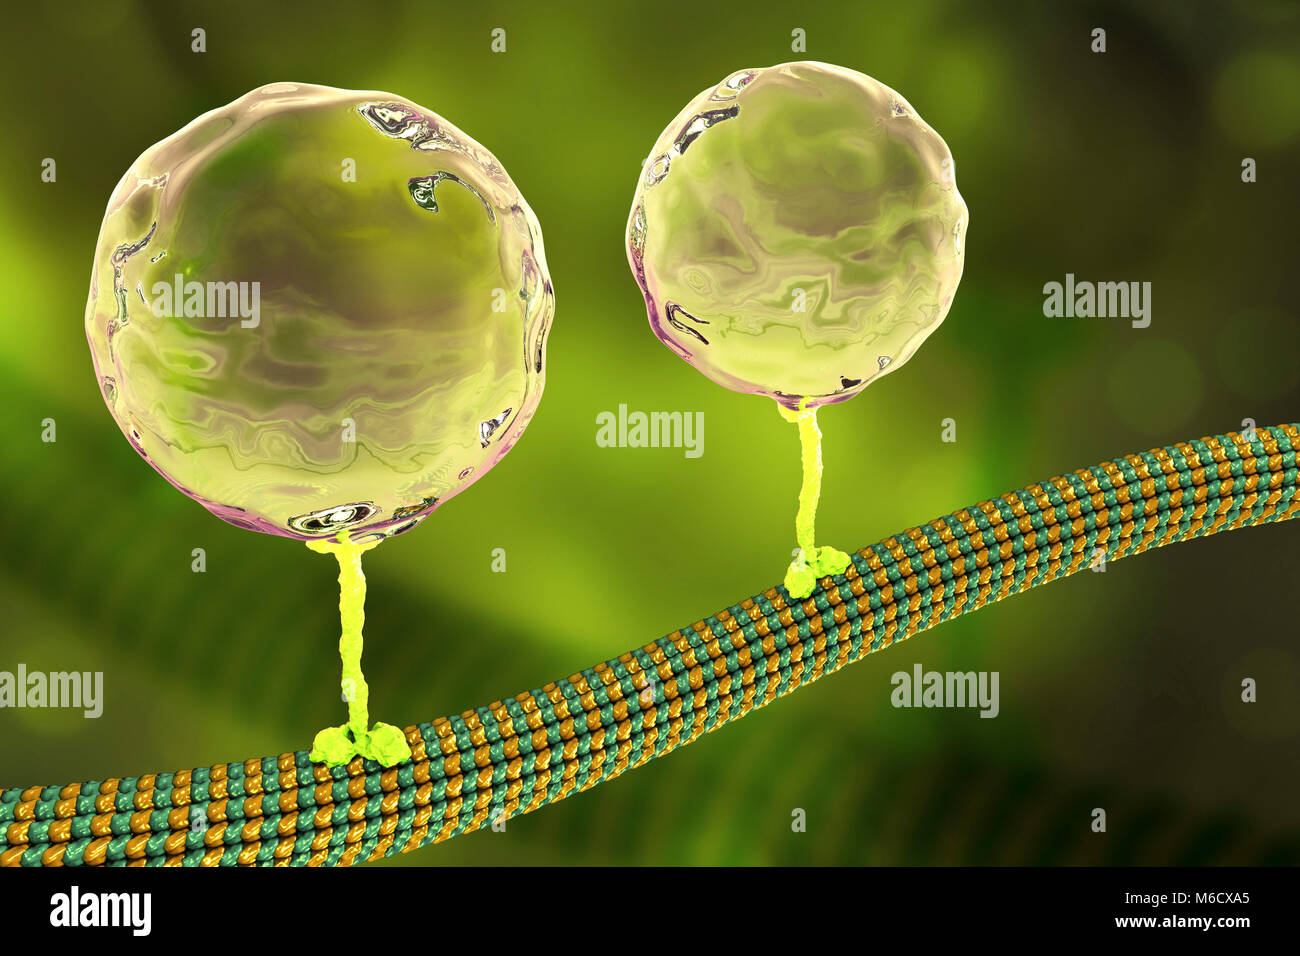 Intracellular transport. Computer illustration of vesicles (spheres) being transported along a microtubule by a Stock Photo